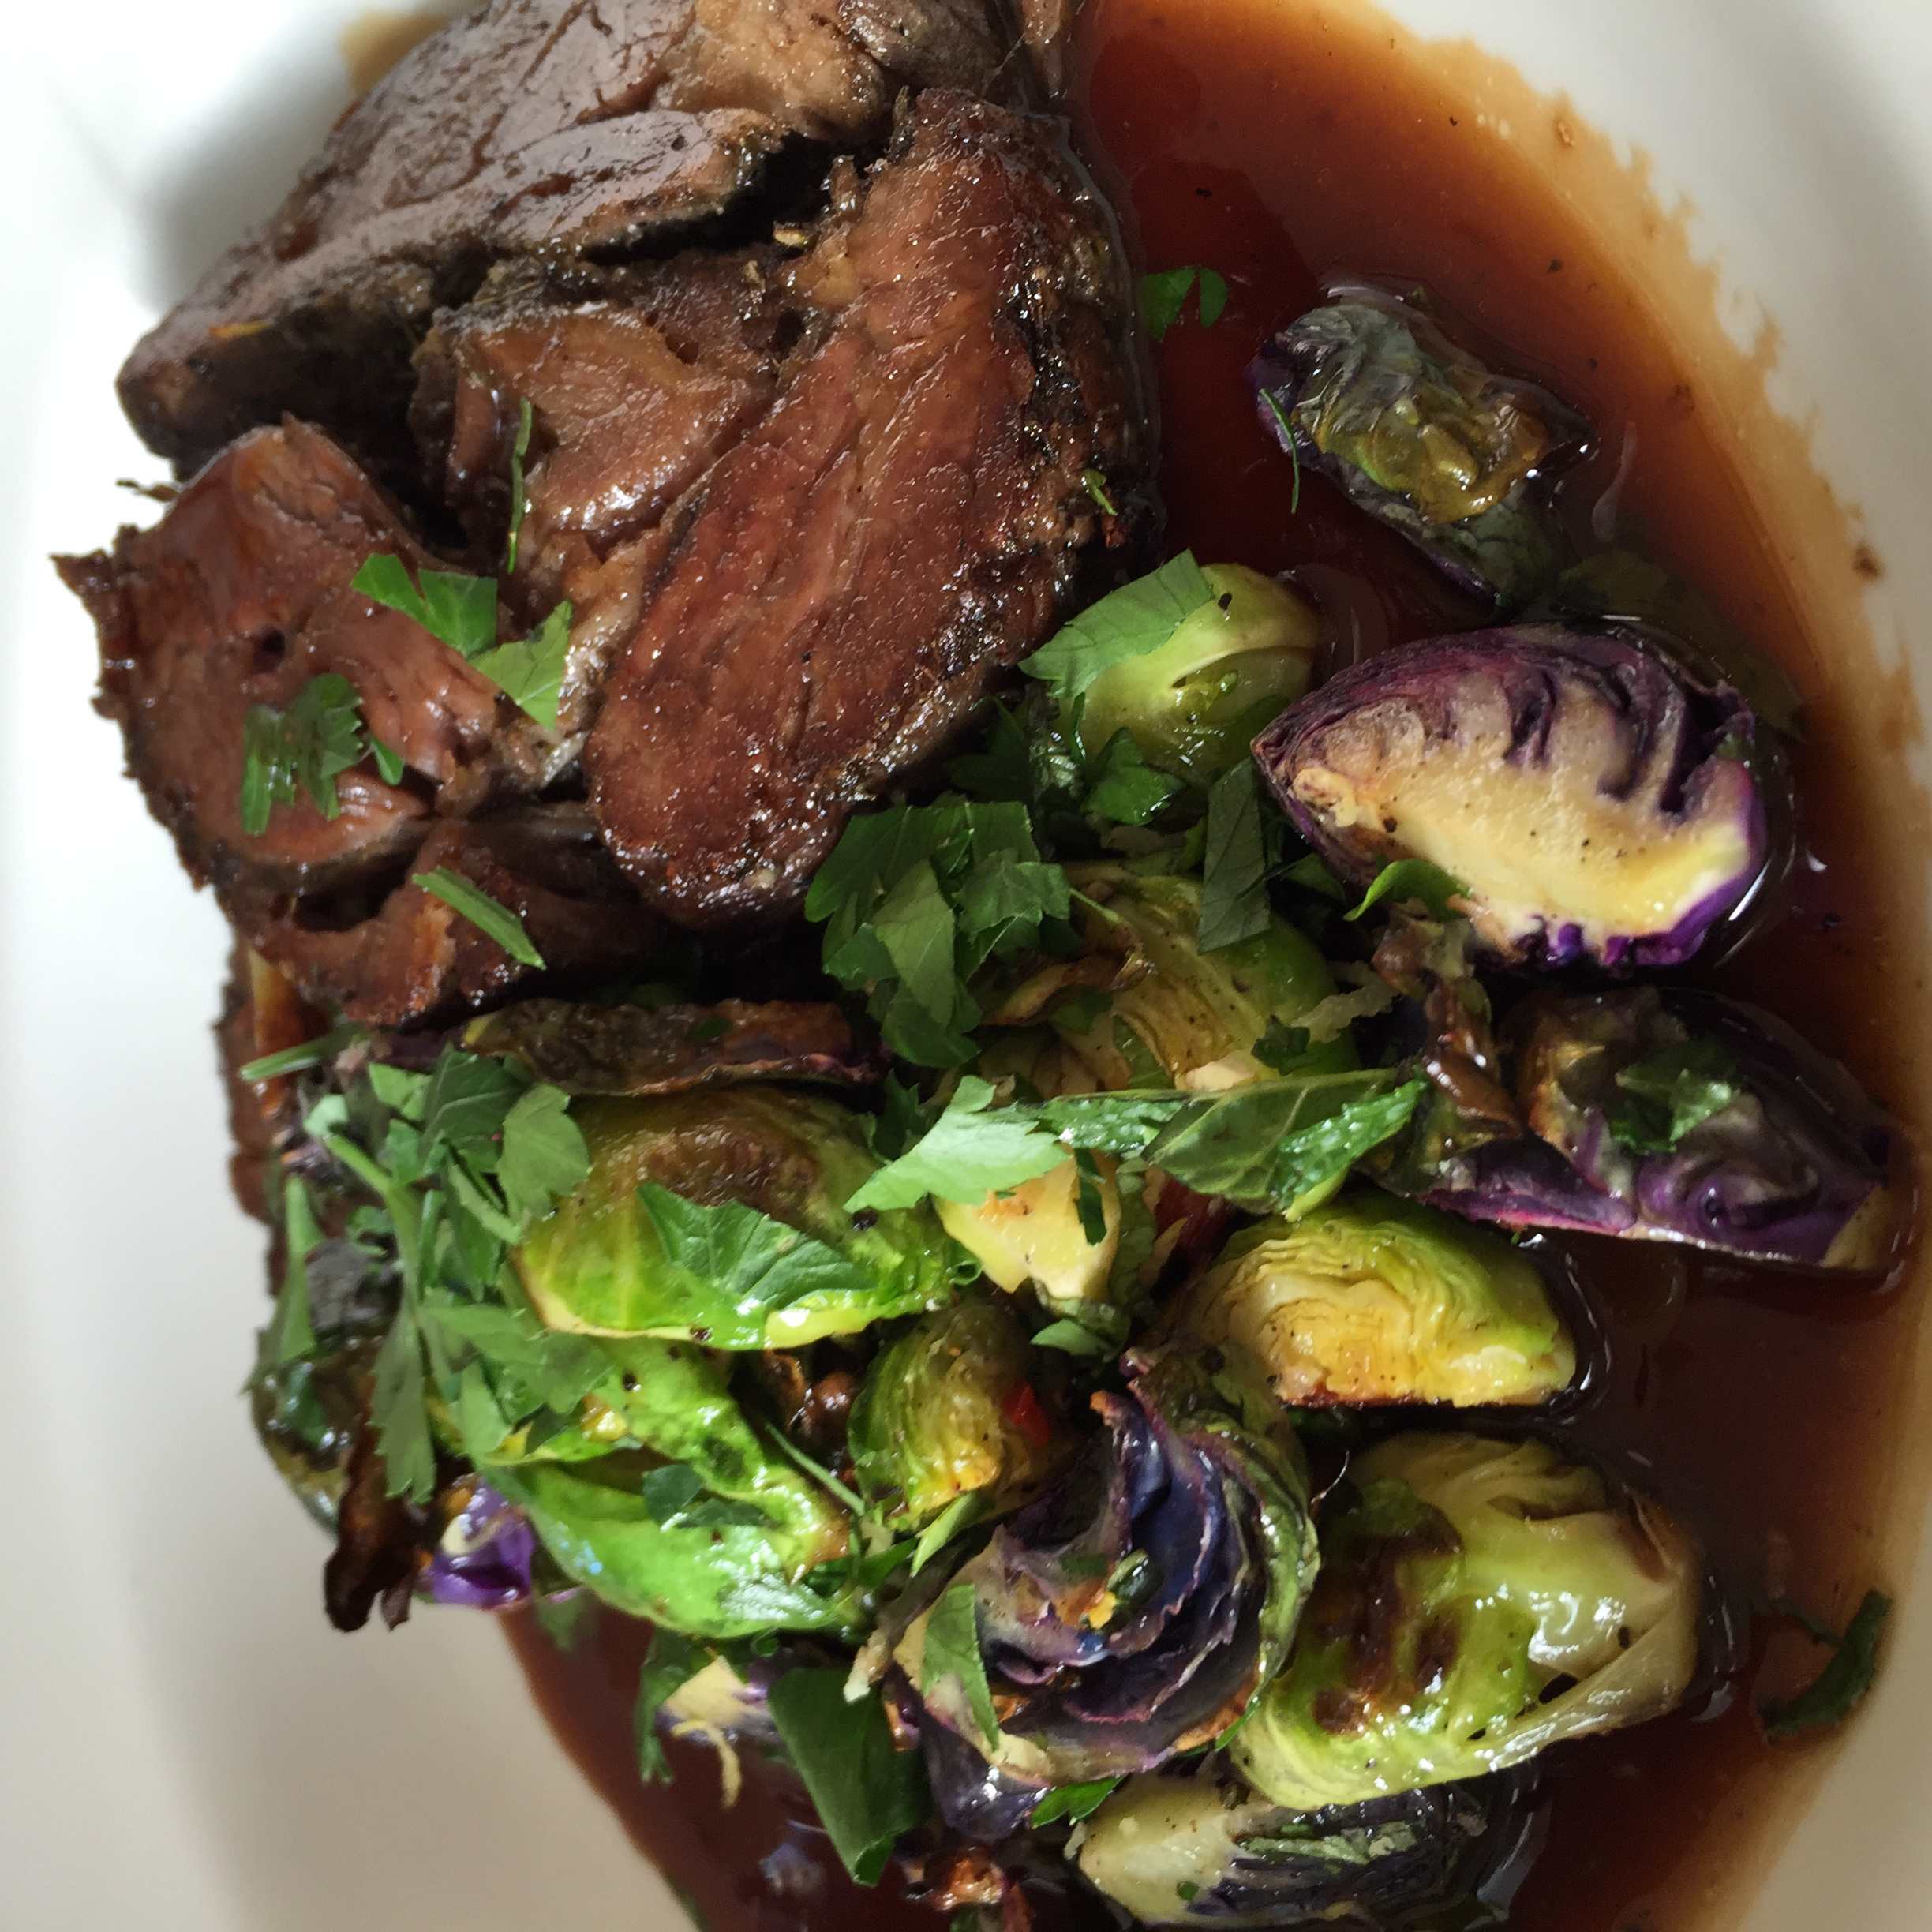 Lamb, slow cooked shoulder, roasted purple & green Brussels sprouts